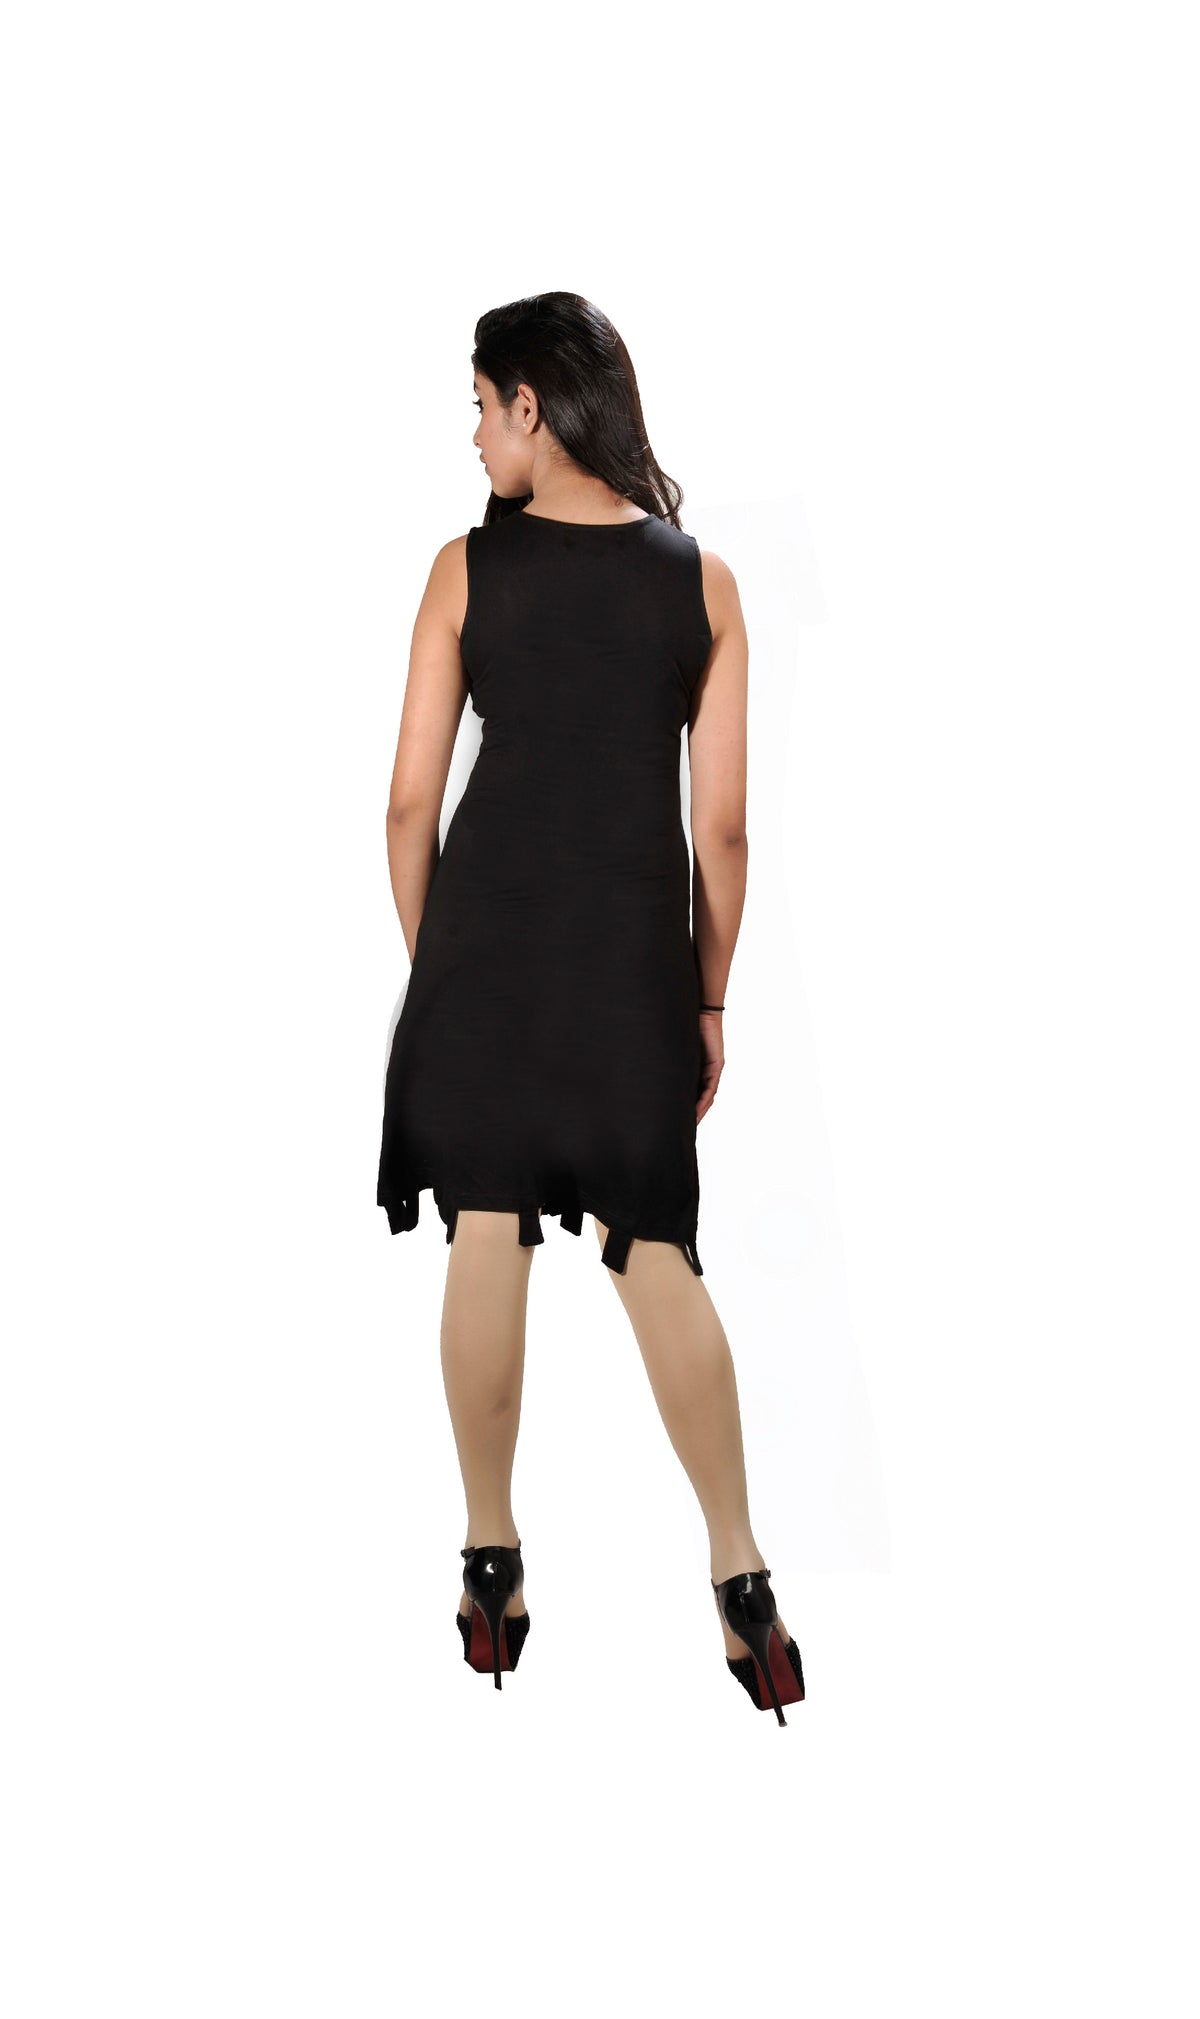 Ladies summer black sleeveless dress with zipper and colorful embroidery - Craze Trade Limited